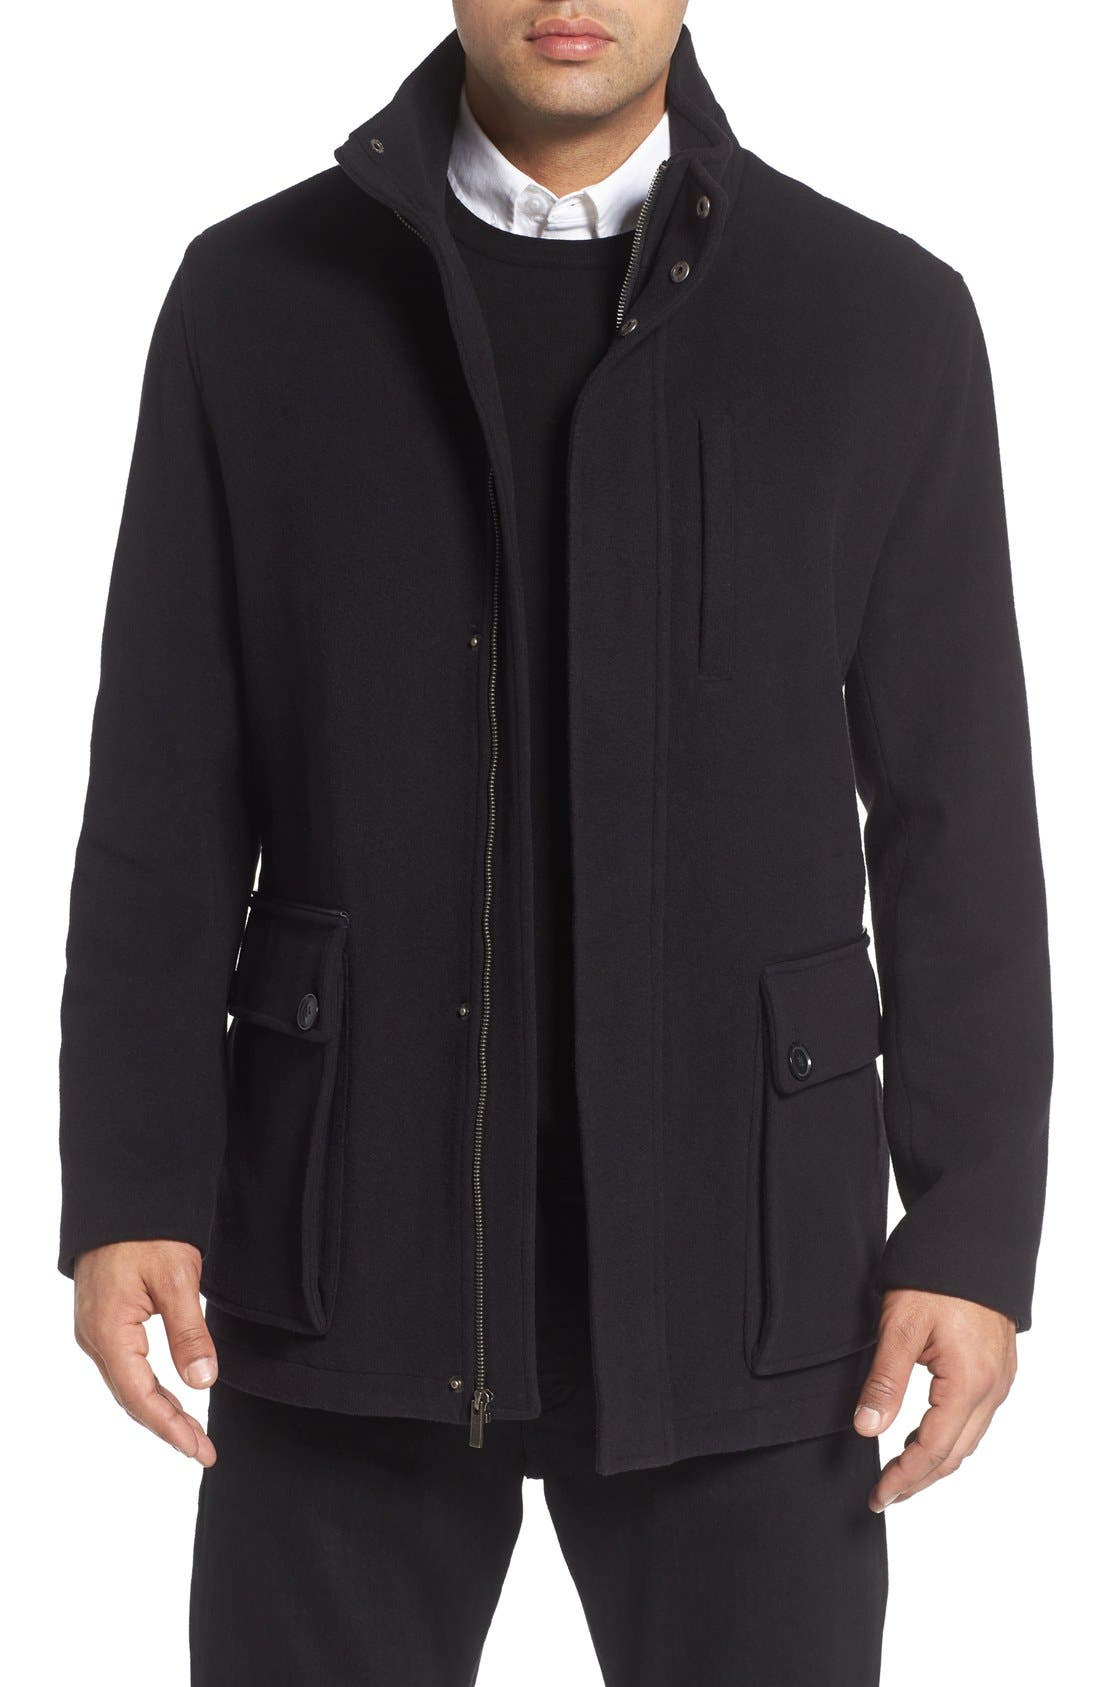 Alternate Image 1 Selected - Cole Haan Wool Blend Car Coat